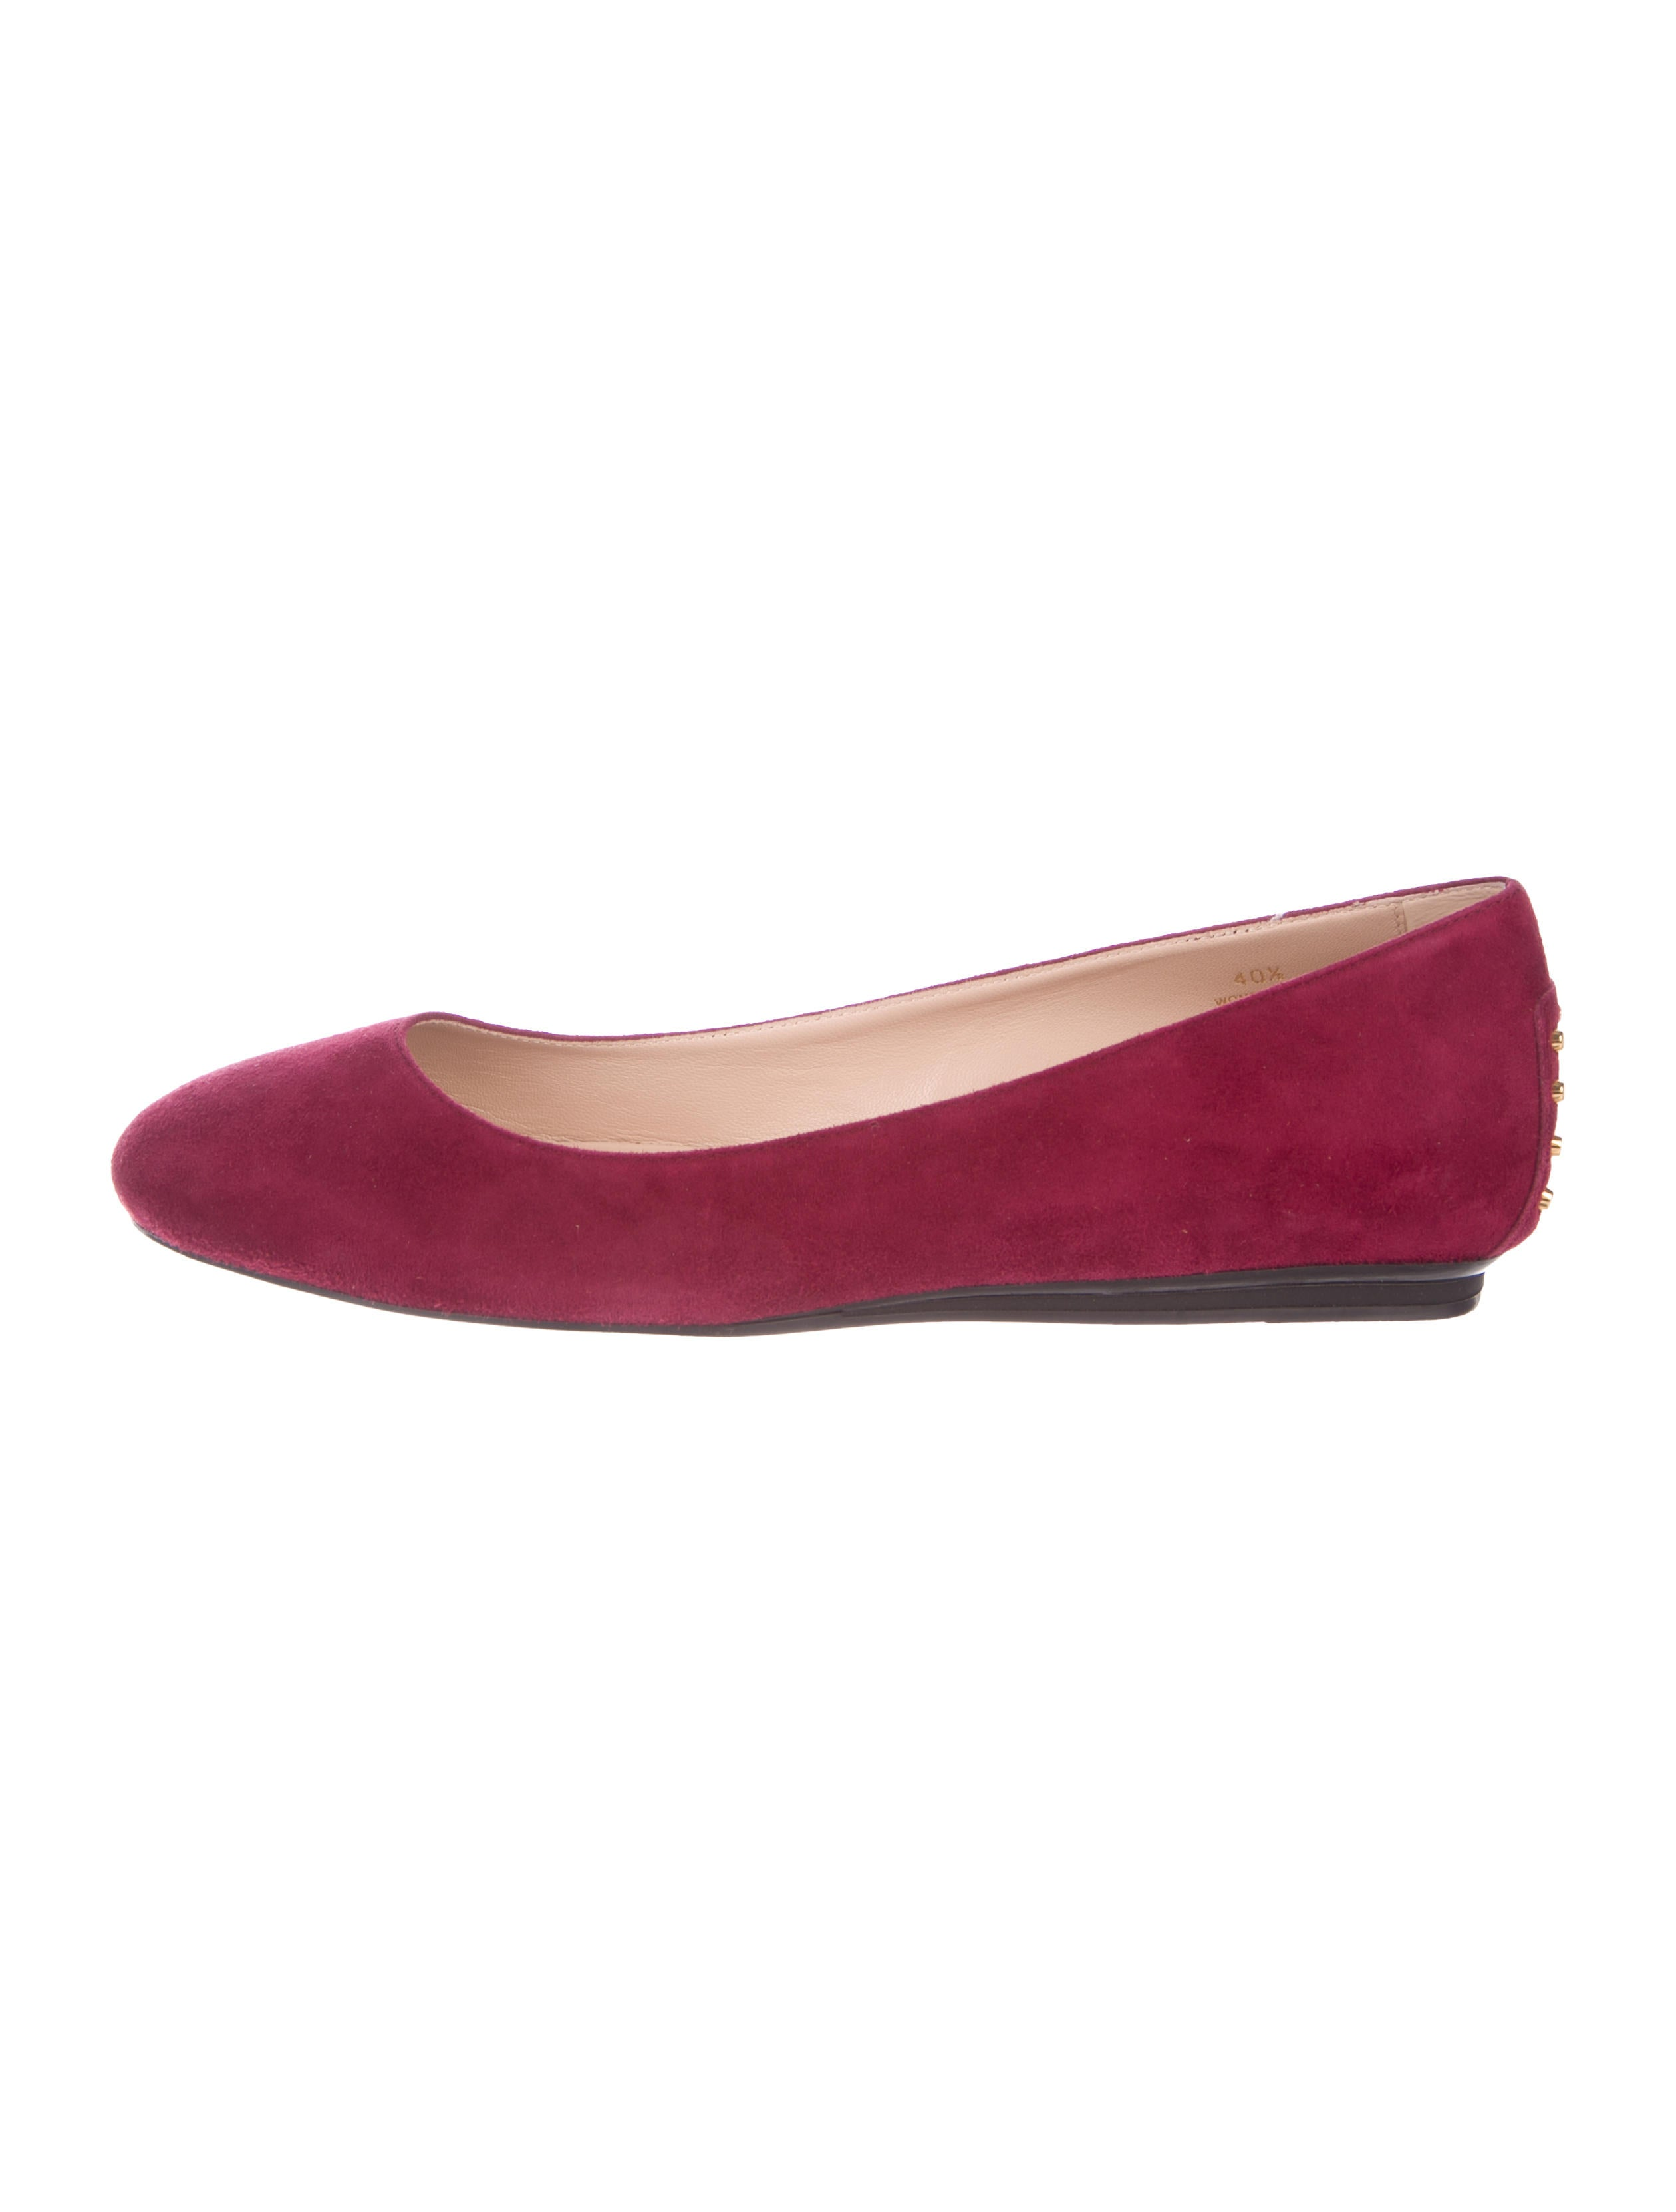 outlet ebay Tod's Suede Round-Toe Flats w/ Tags release dates online htiIQOLDx7